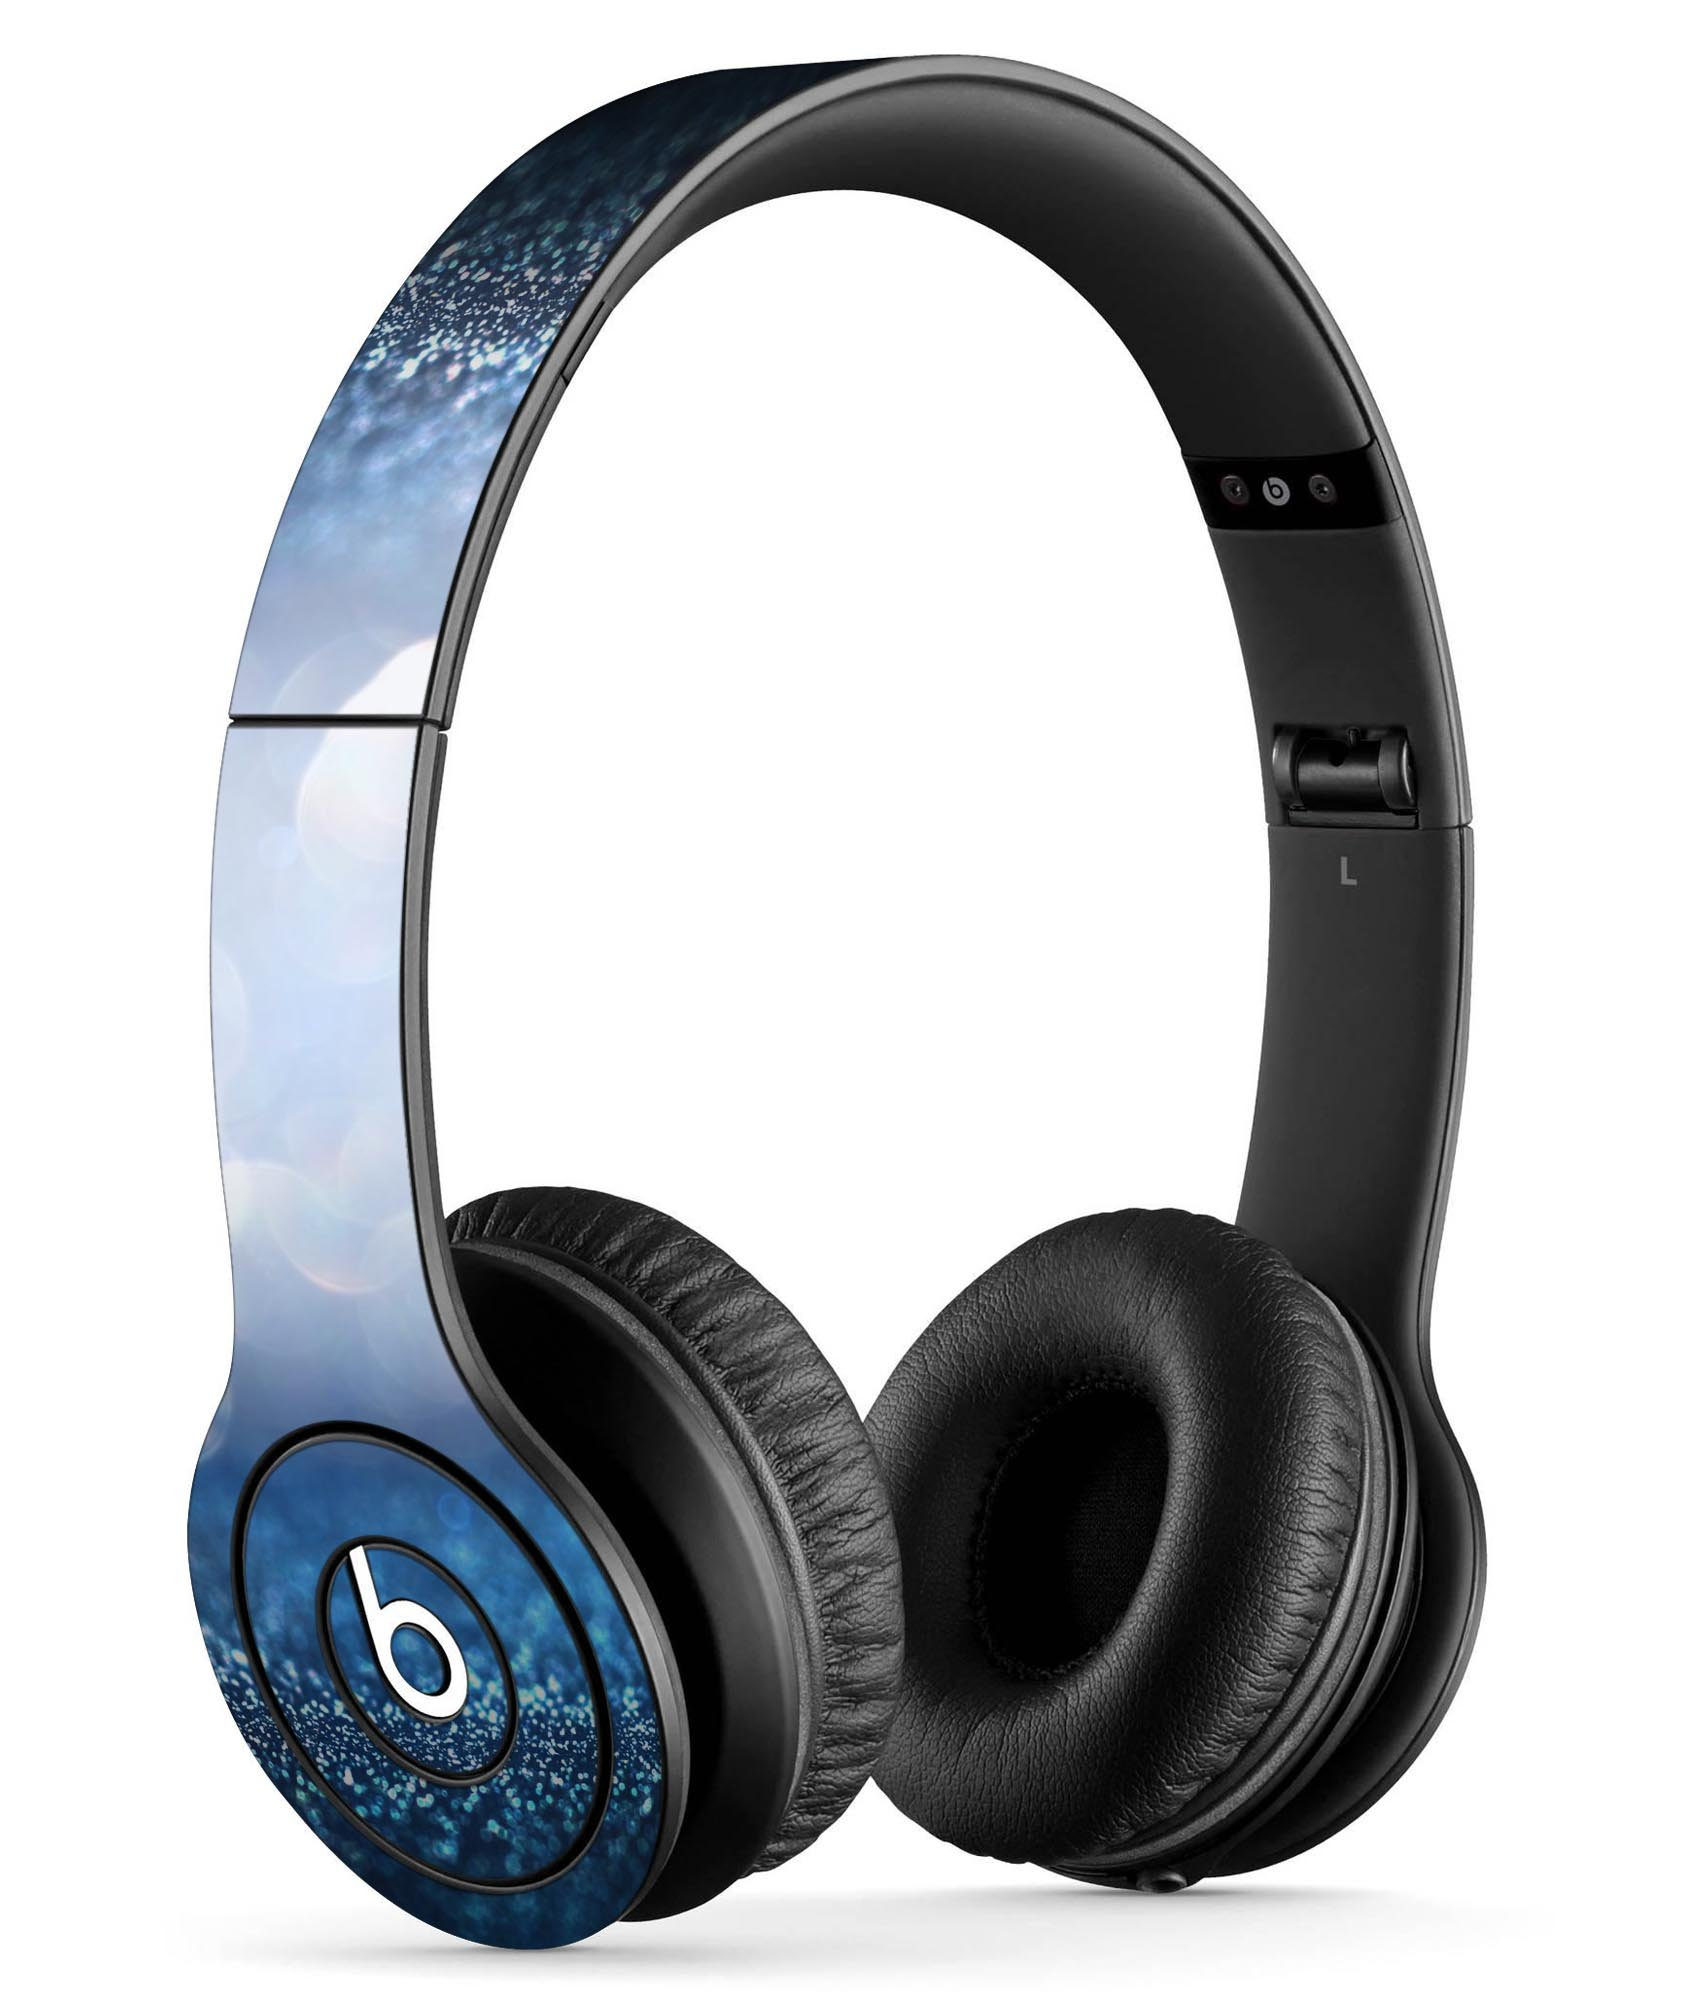 Royal Blue and Silver Glowing Orbs of Light DesignSkinz Full-Body Skin Kit for the Beats by Dre Solo or SoloHD Headphones / Ultra-Thin / Matte Finished / Protective Skin Wrap